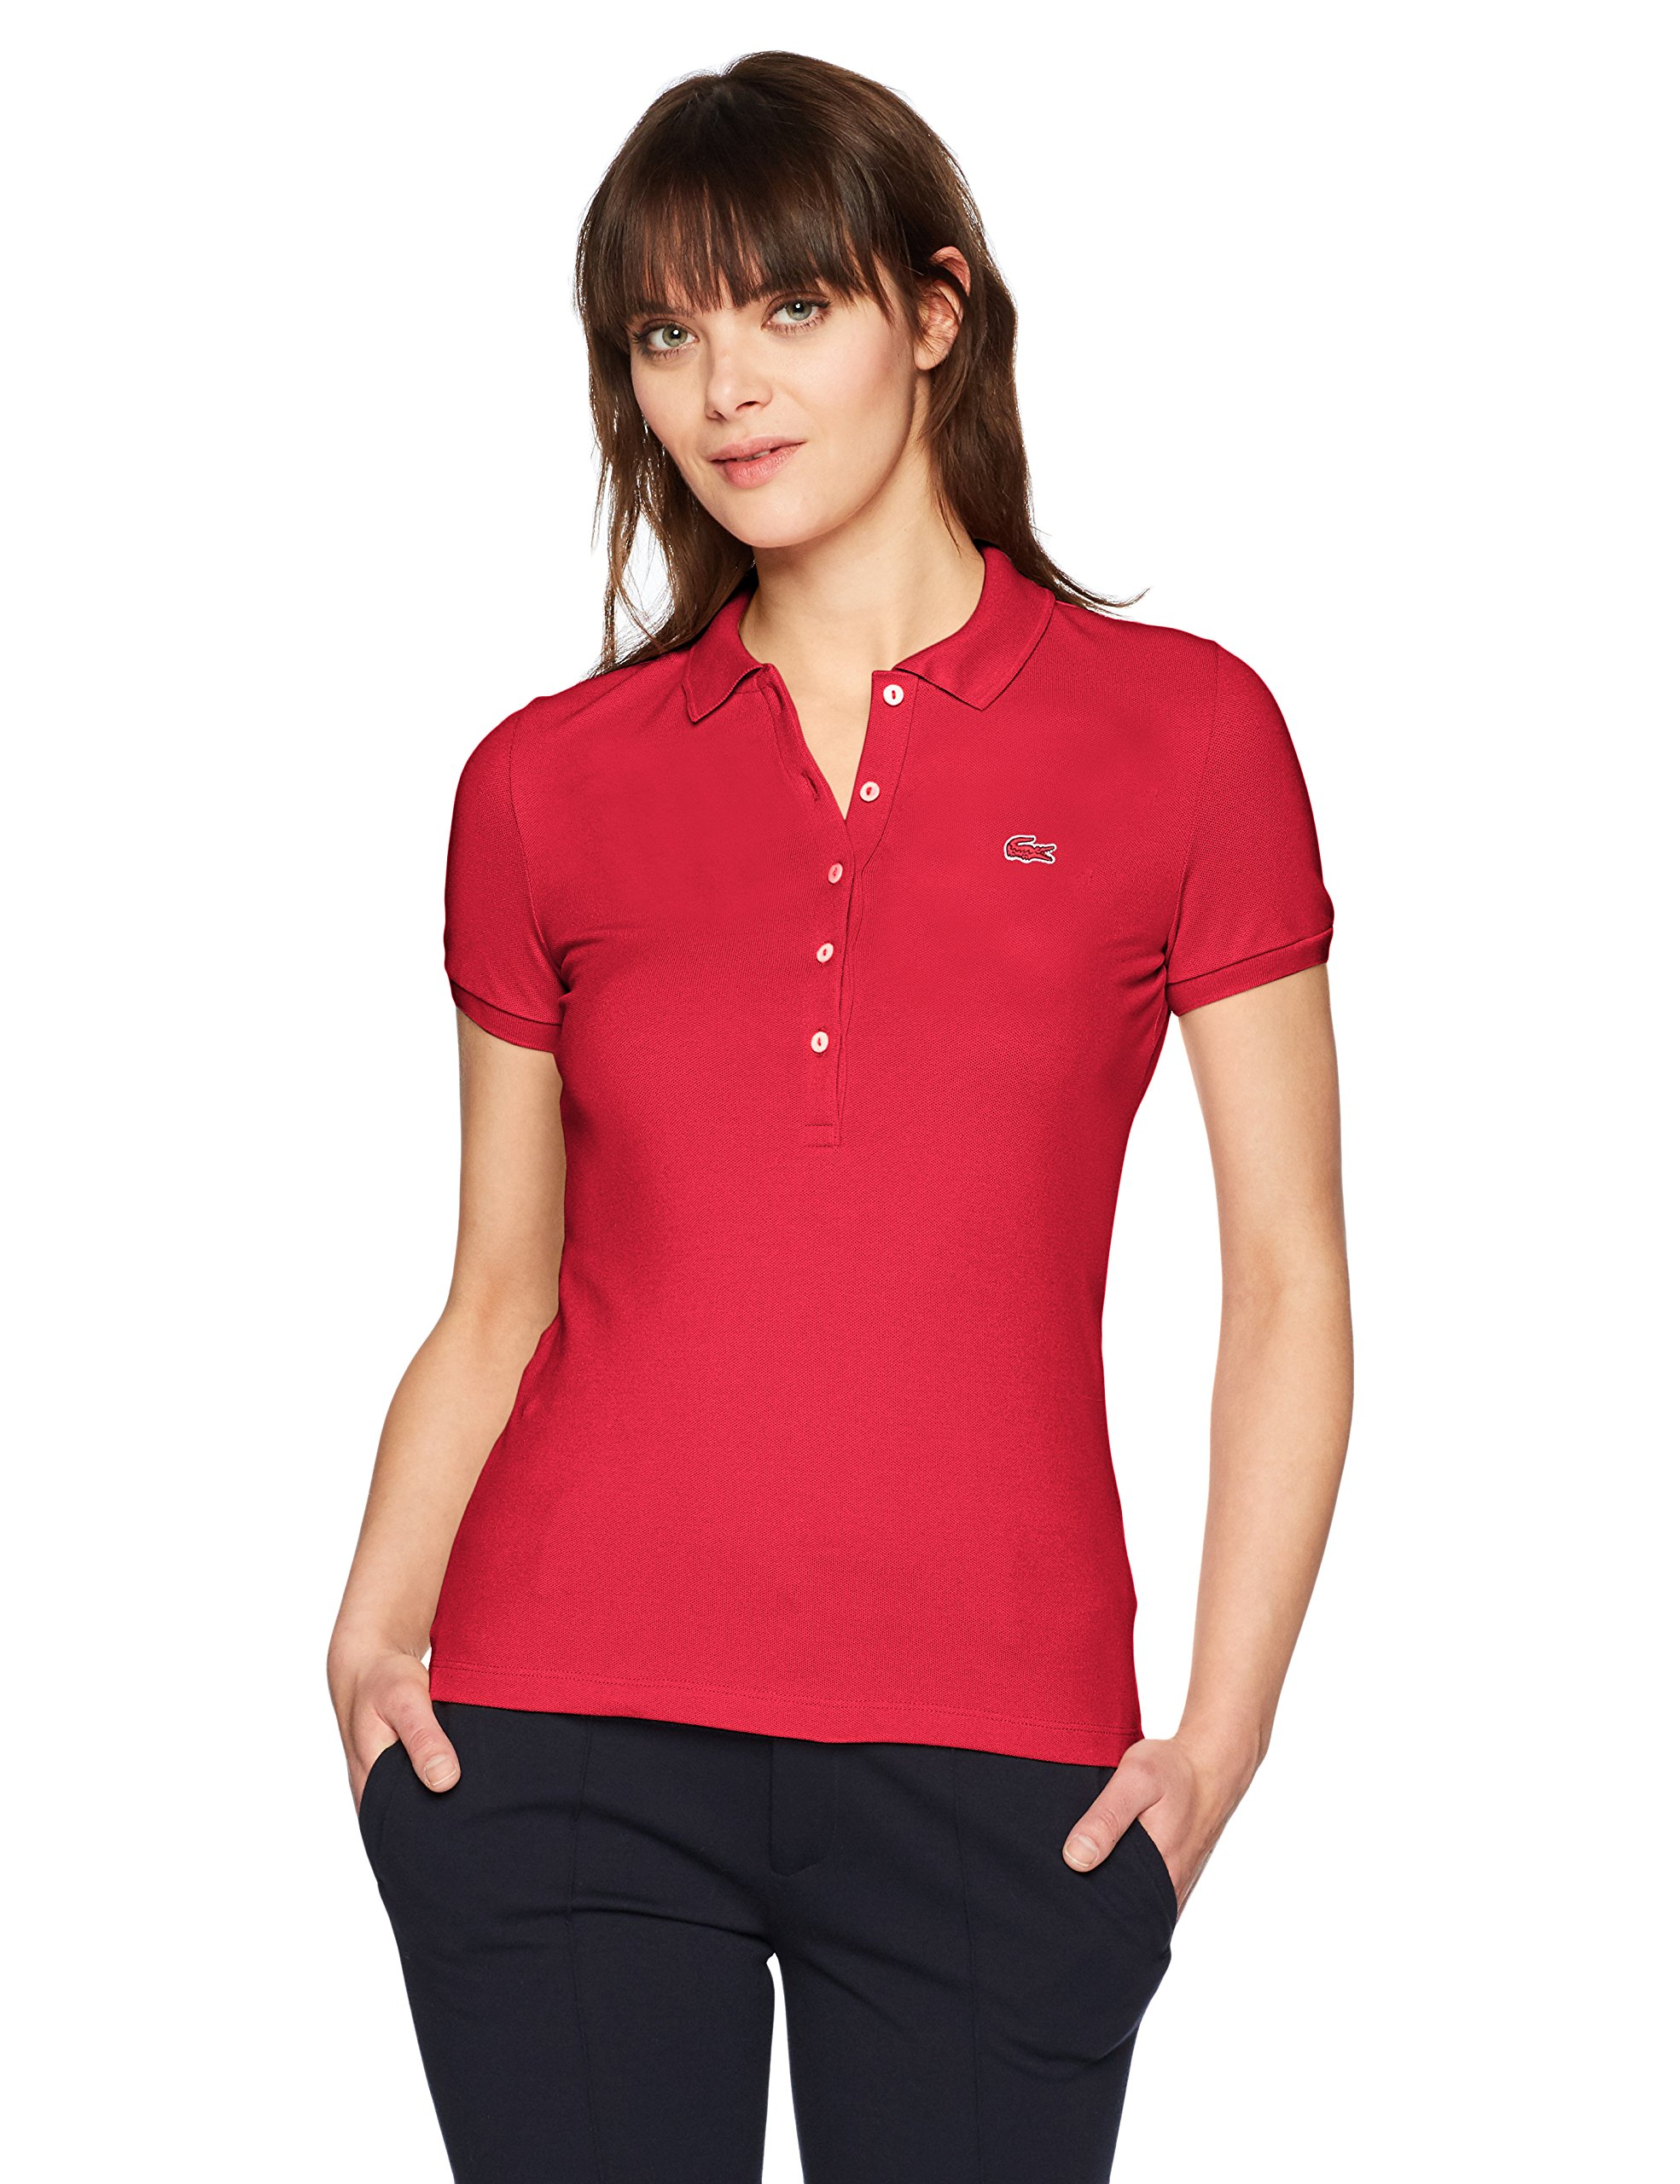 e7aefb6db Galleon - Lacoste Women s Classic Short Sleeve Slim Fit Stretch Pique Polo